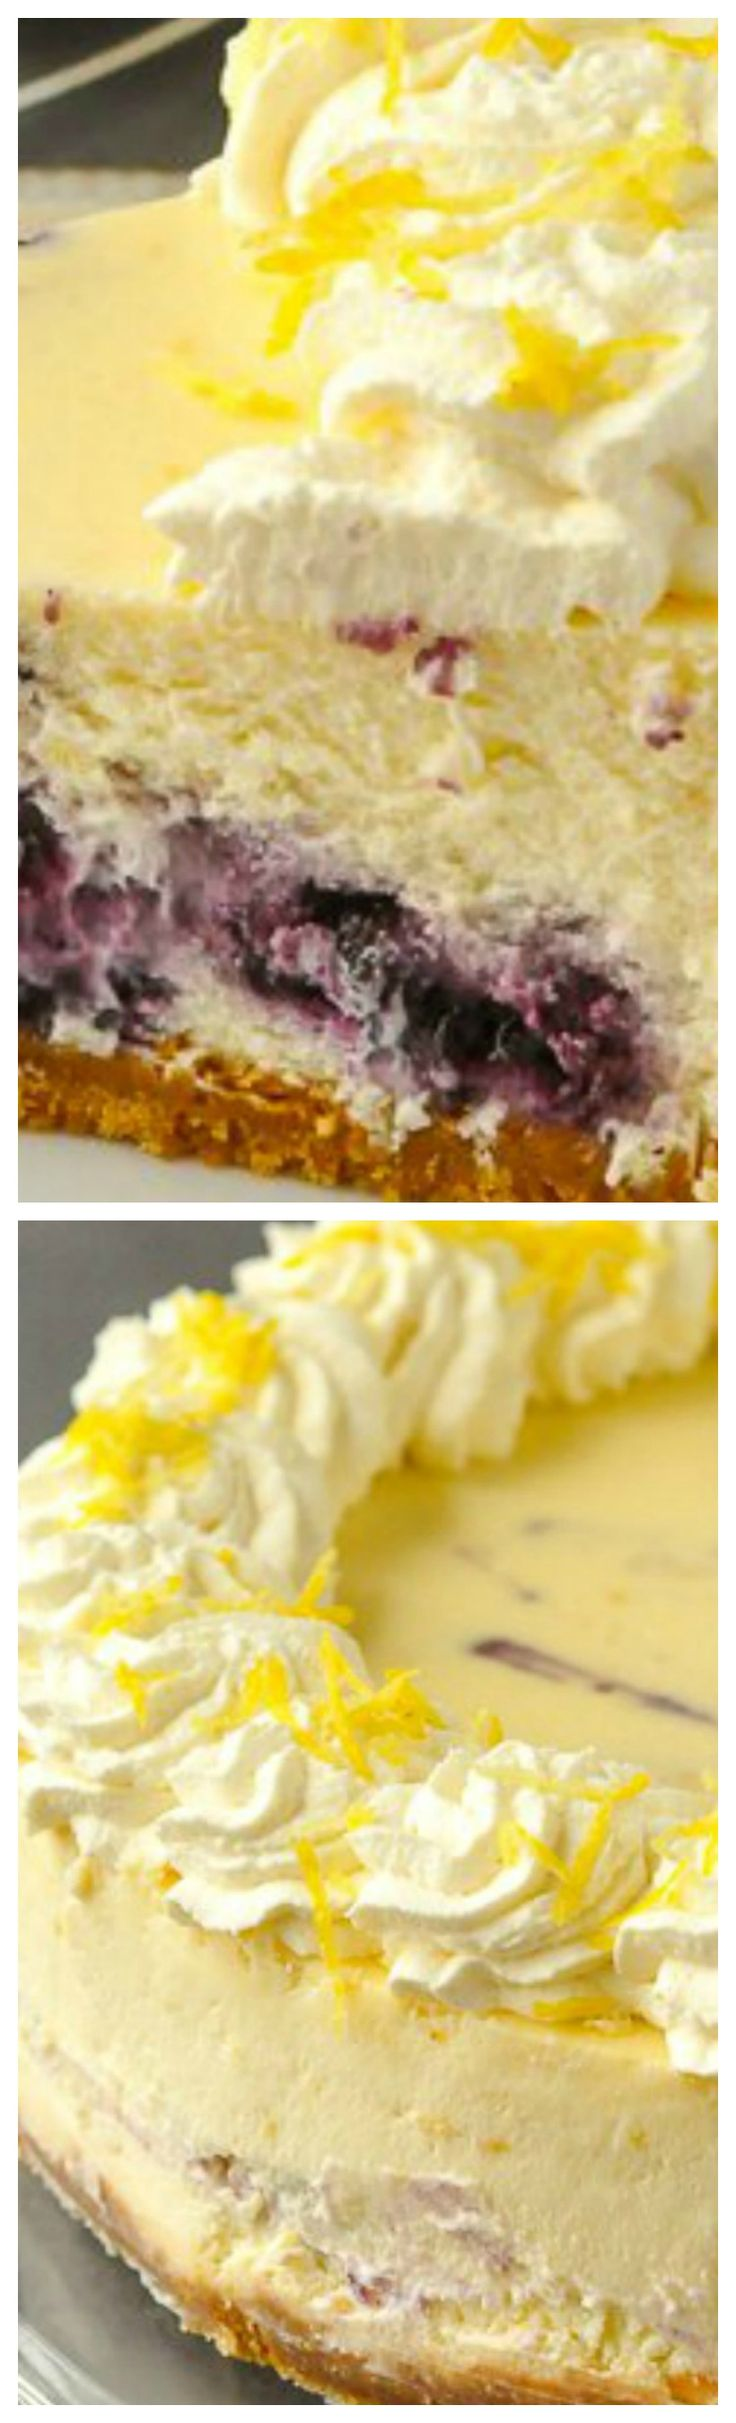 Lemon Blueberry Swirl Cheesecake ~ Two extremely complimentary flavours come together deliciously when a blueberry compote gets swirled through a creamy lemon cheesecake.